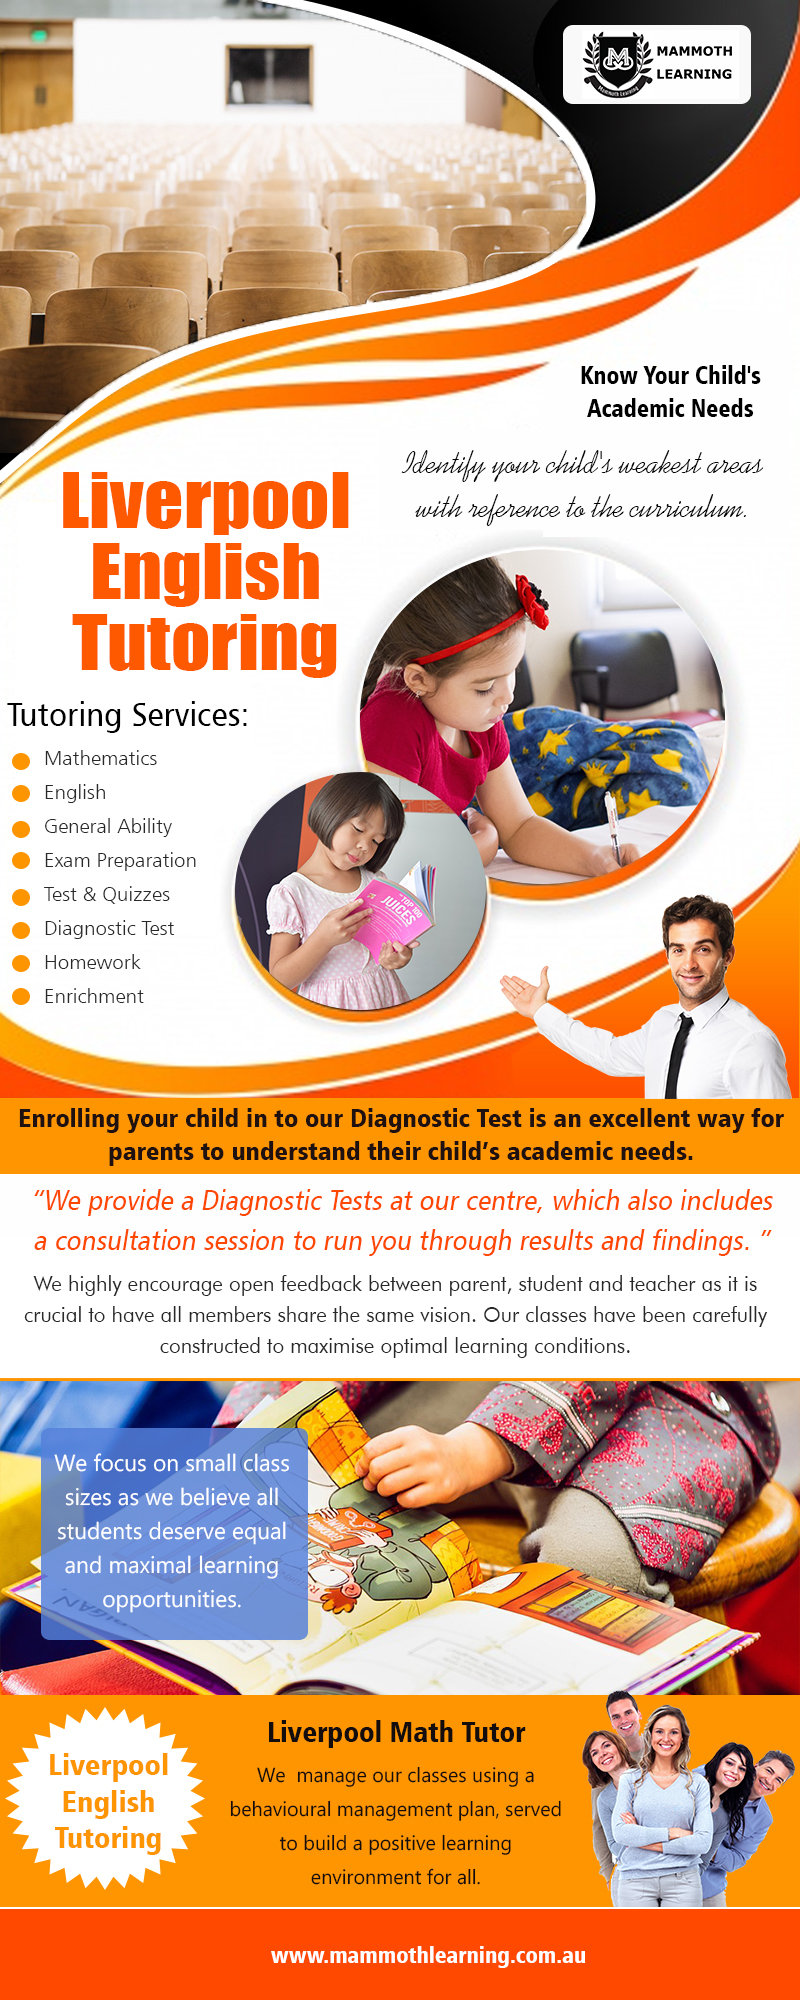 Liverpool English Tutoring